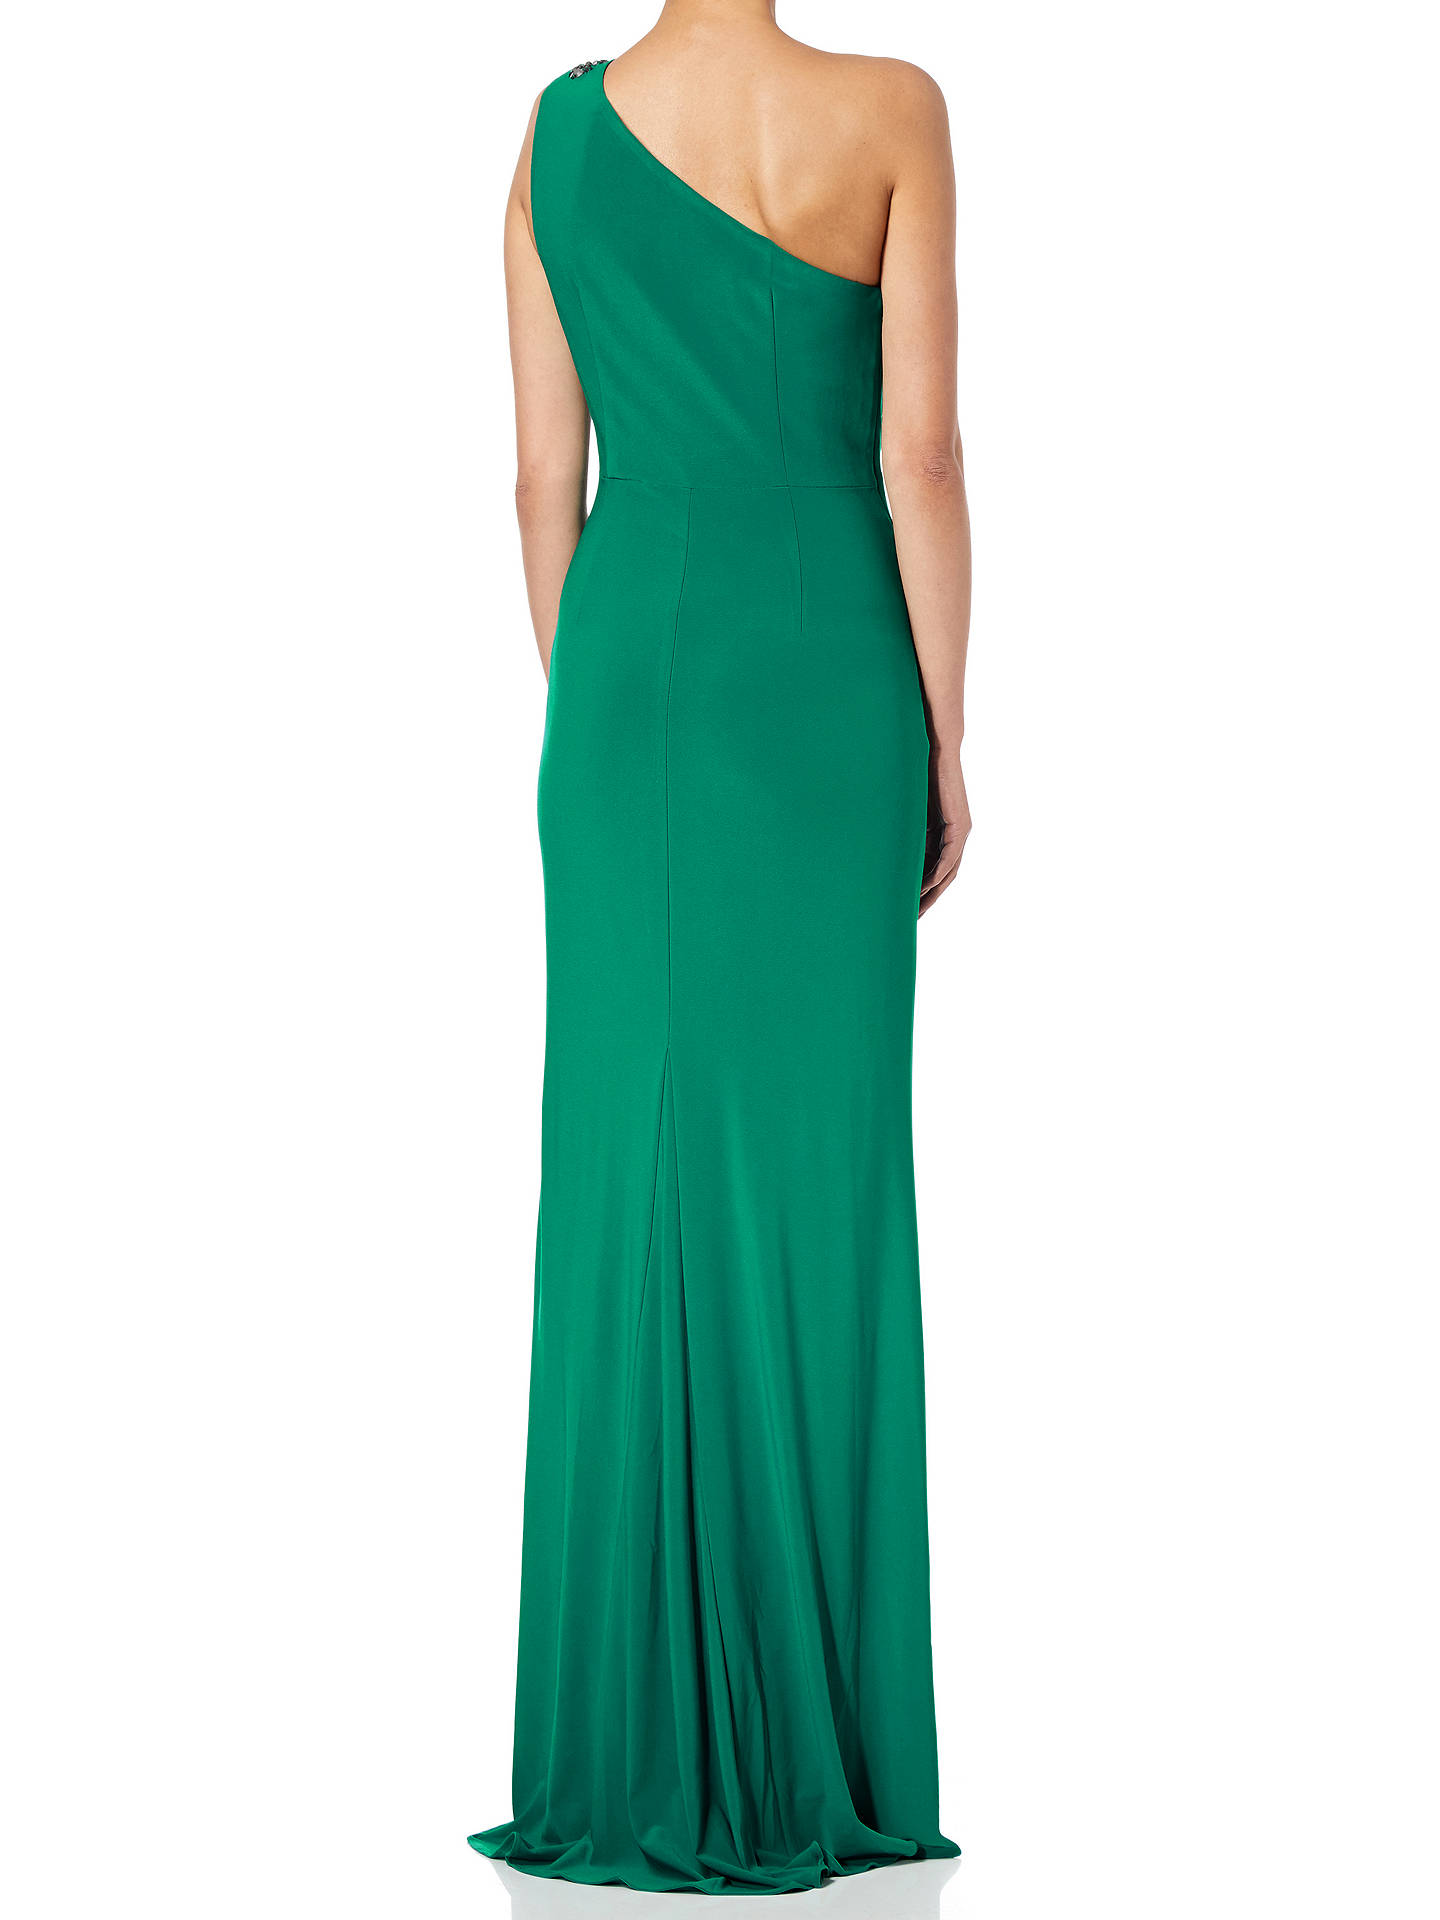 BuyAdrianna Papell Jeweled One-Shoulder Draped Gown, Vivid Malachite, 6 Online at johnlewis.com